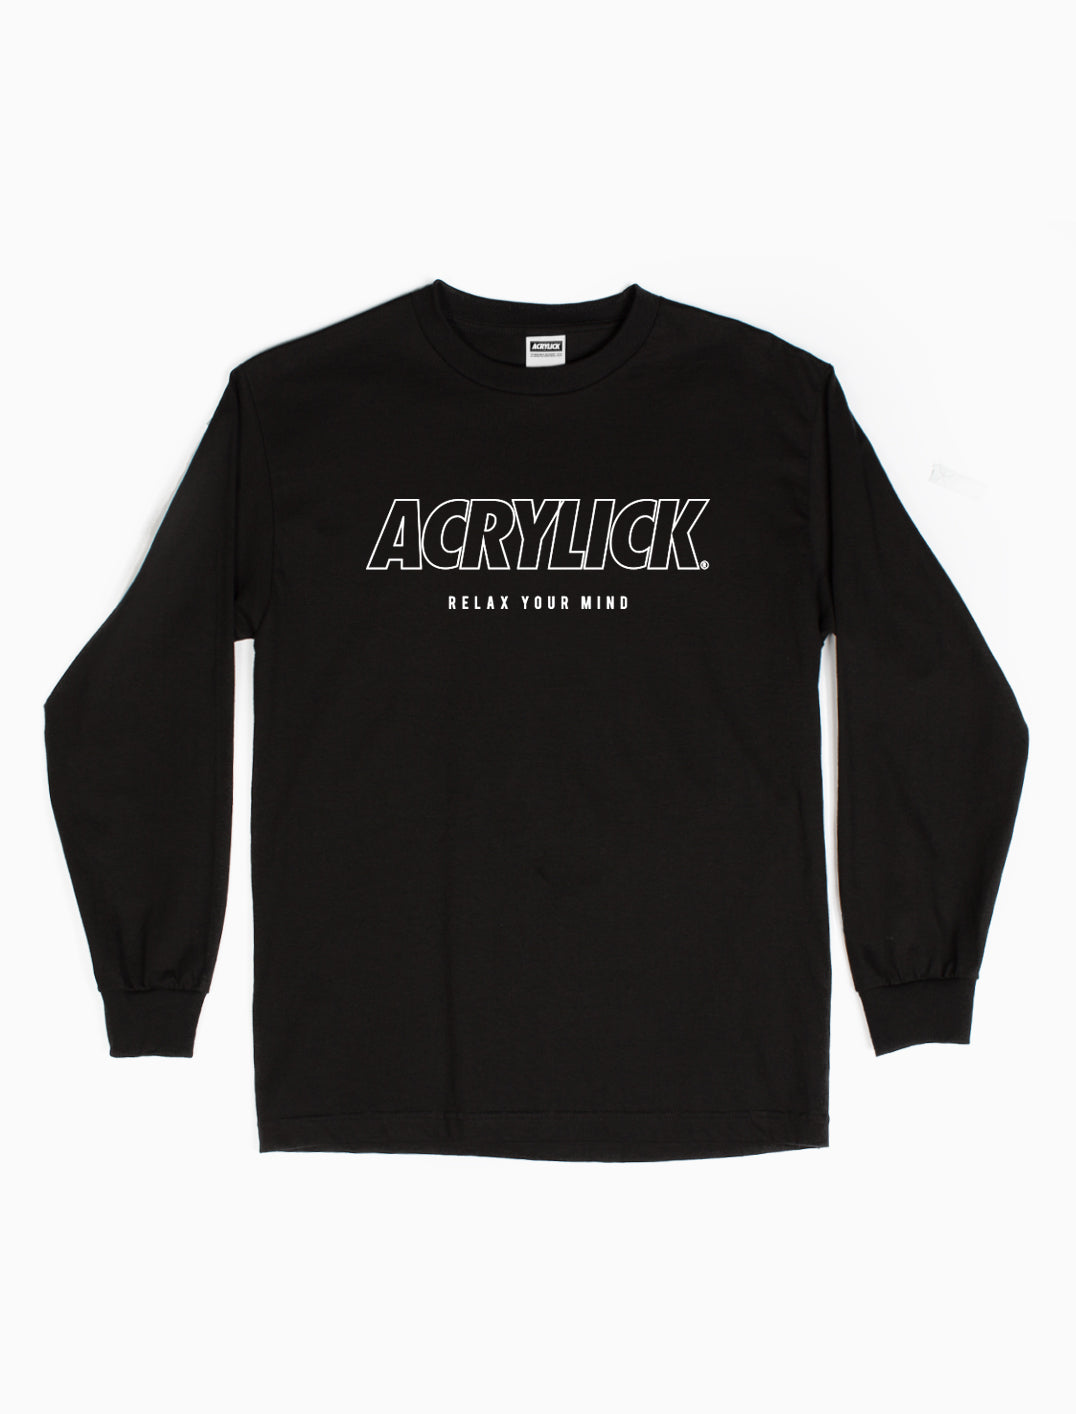 Acrylick - Blueprint - Long Sleeve Tee